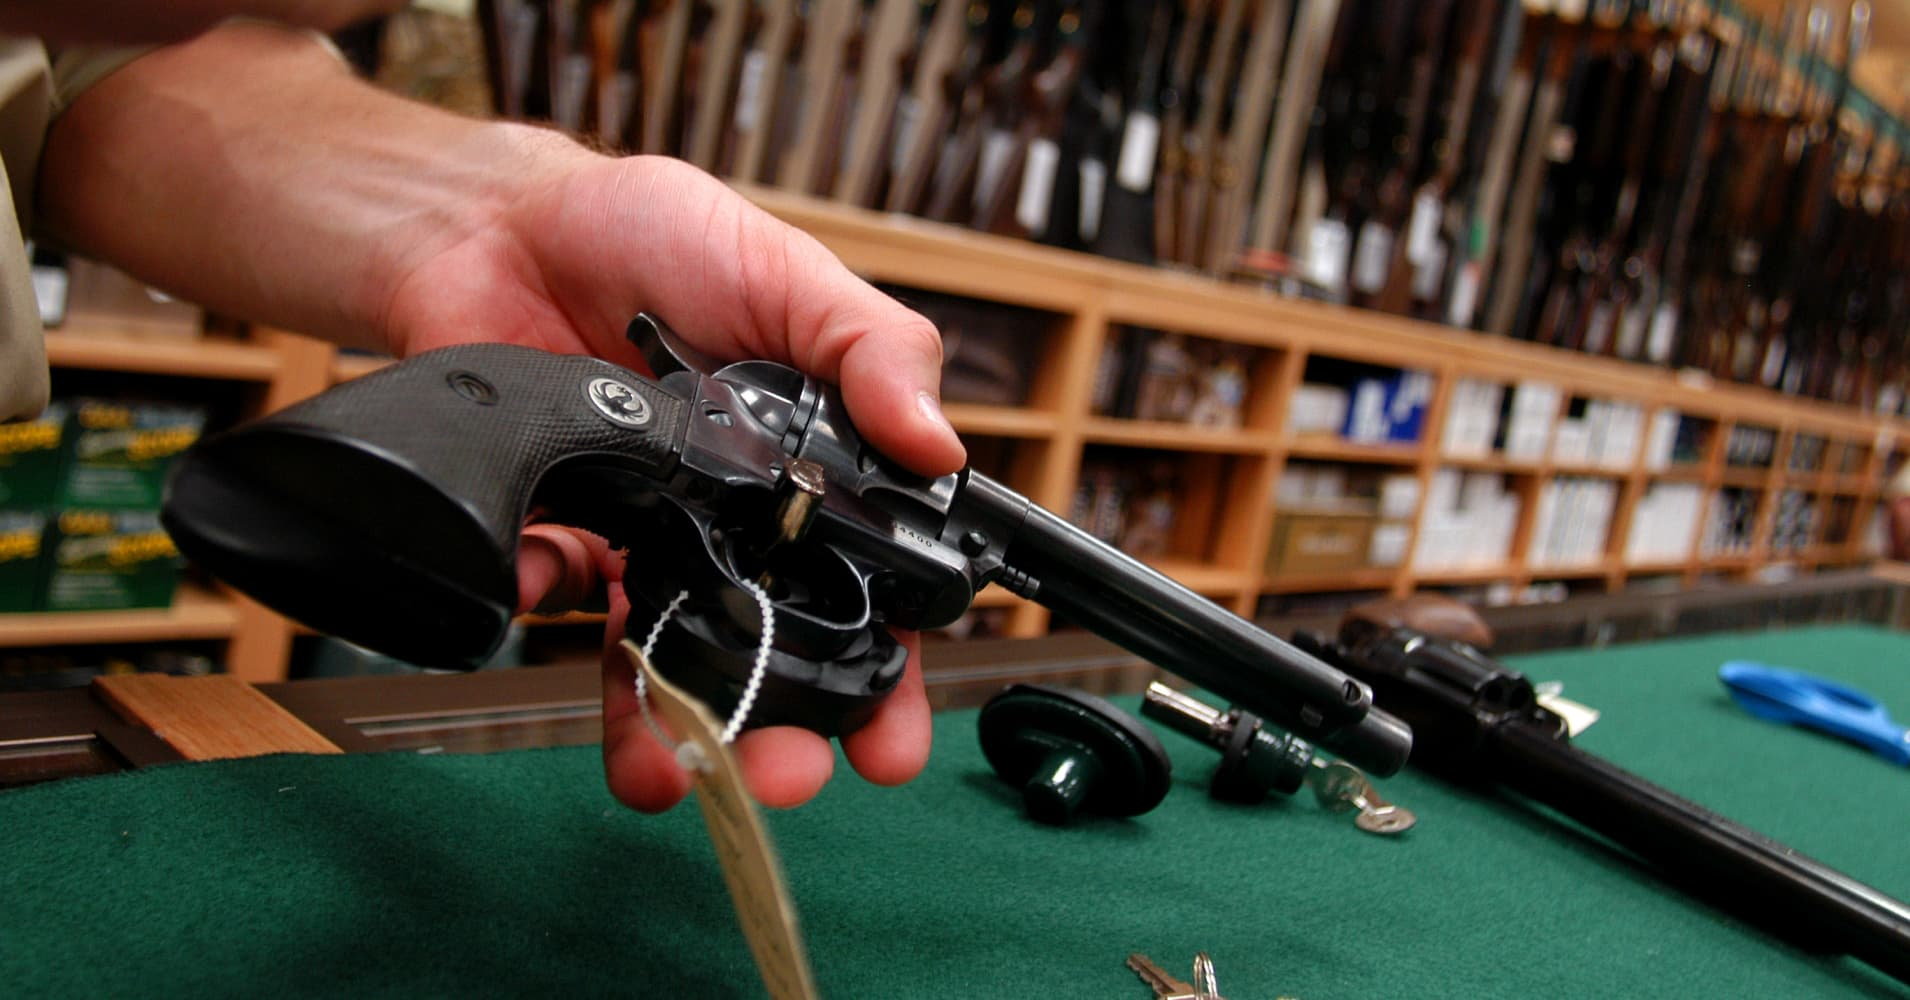 Funds managing $4.8 trillion press the firearm industry to accept new principles on gun safety